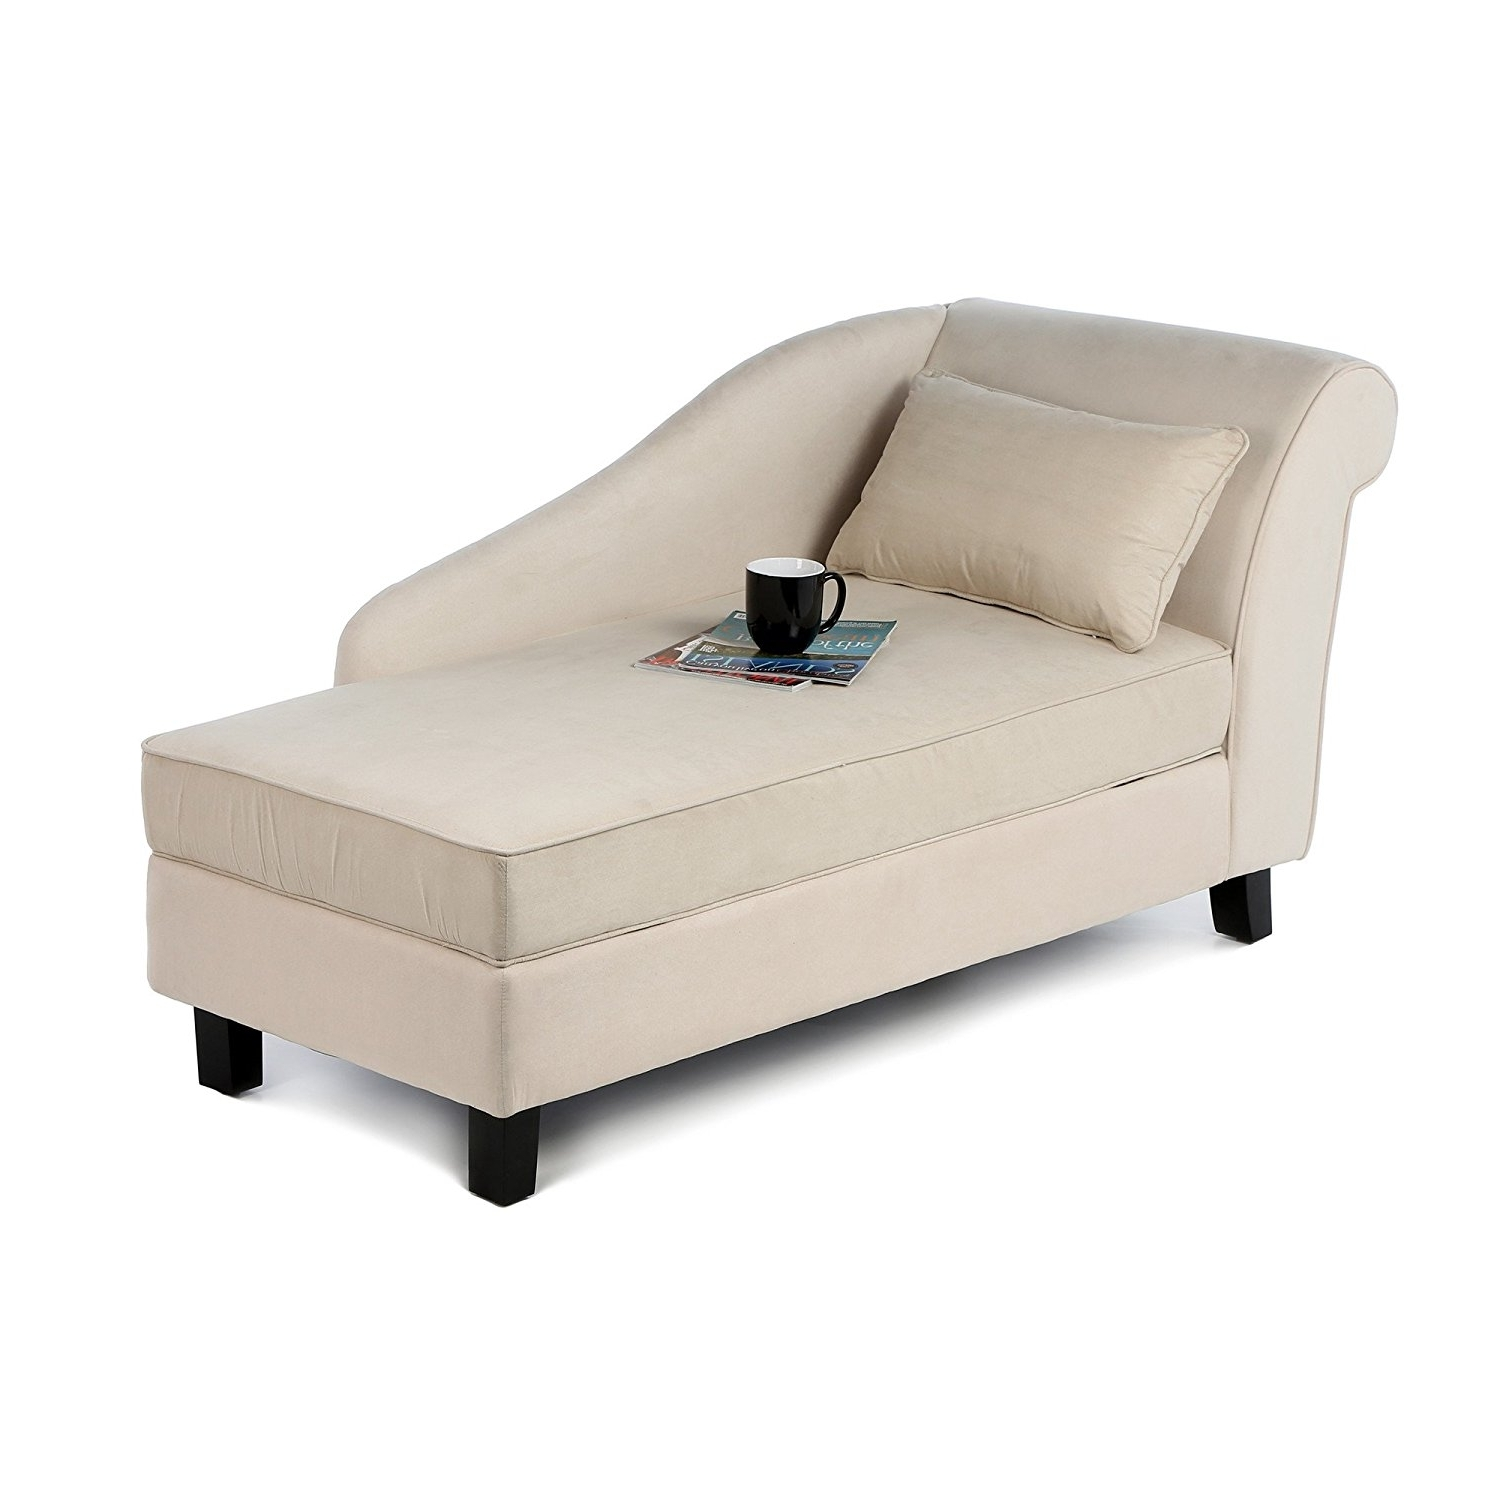 Latest Amazon: Castleton Home Storage Chaise Lounge Modern Long Chair Pertaining To Sleeper Chaise Lounges (View 7 of 15)